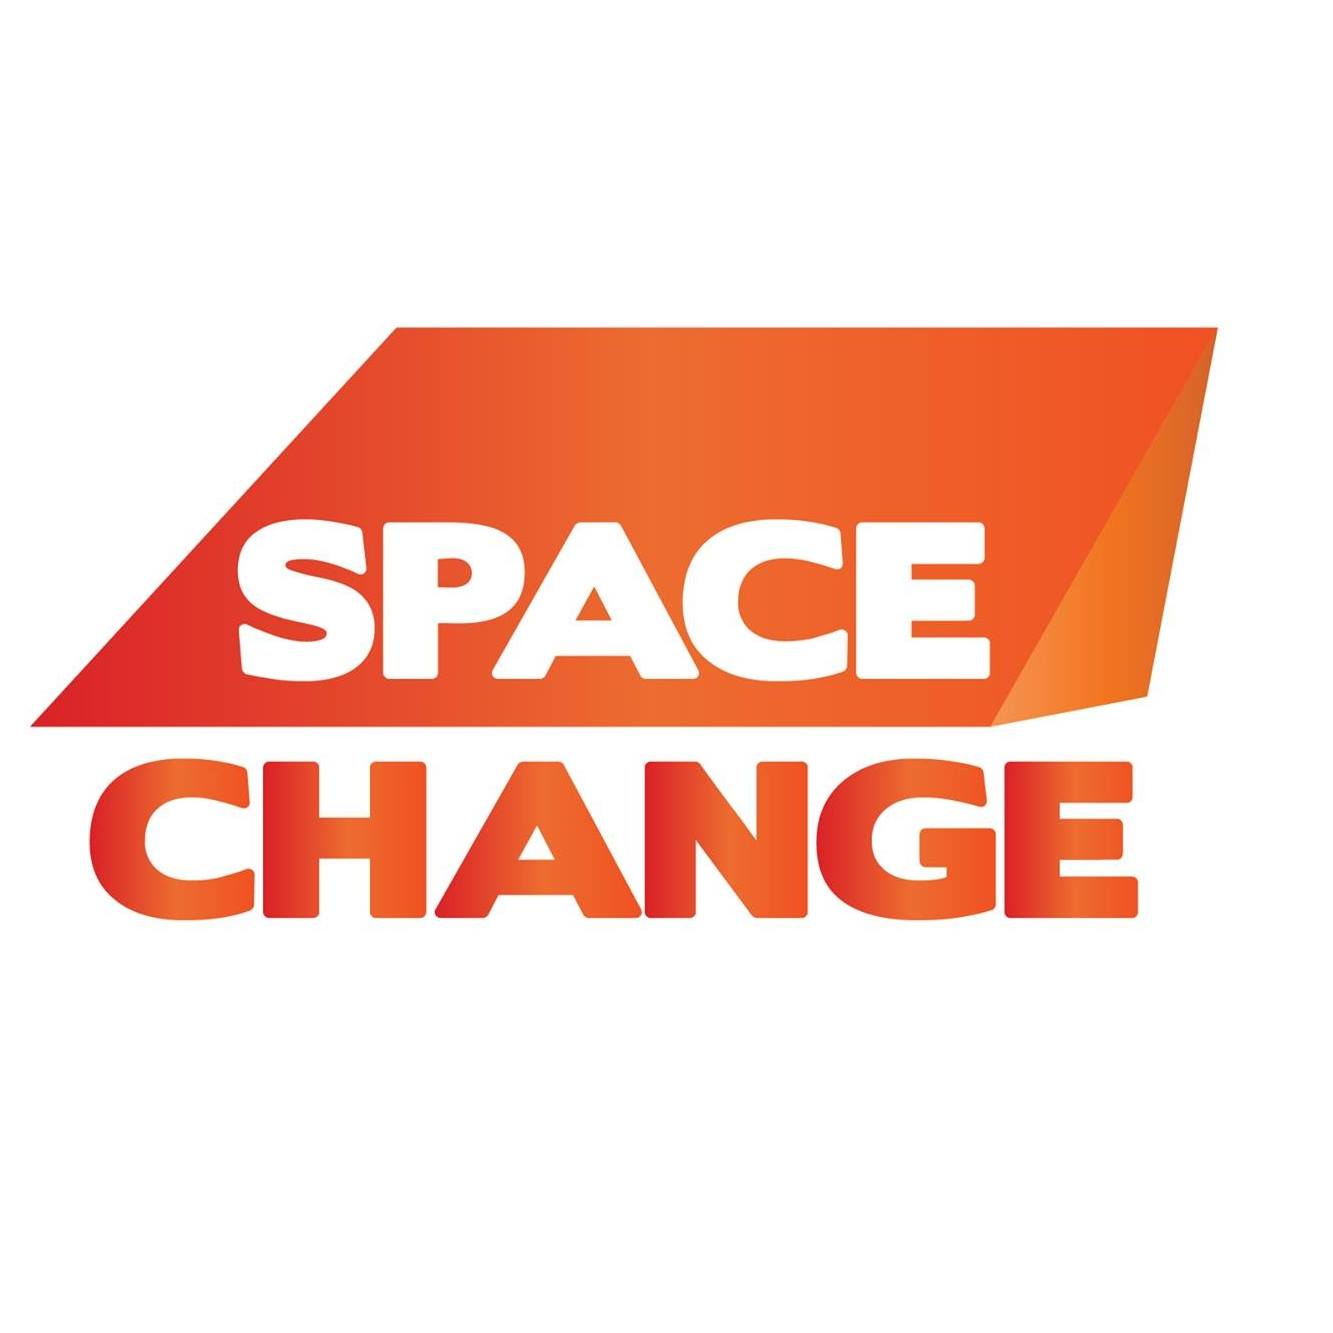 Space Change